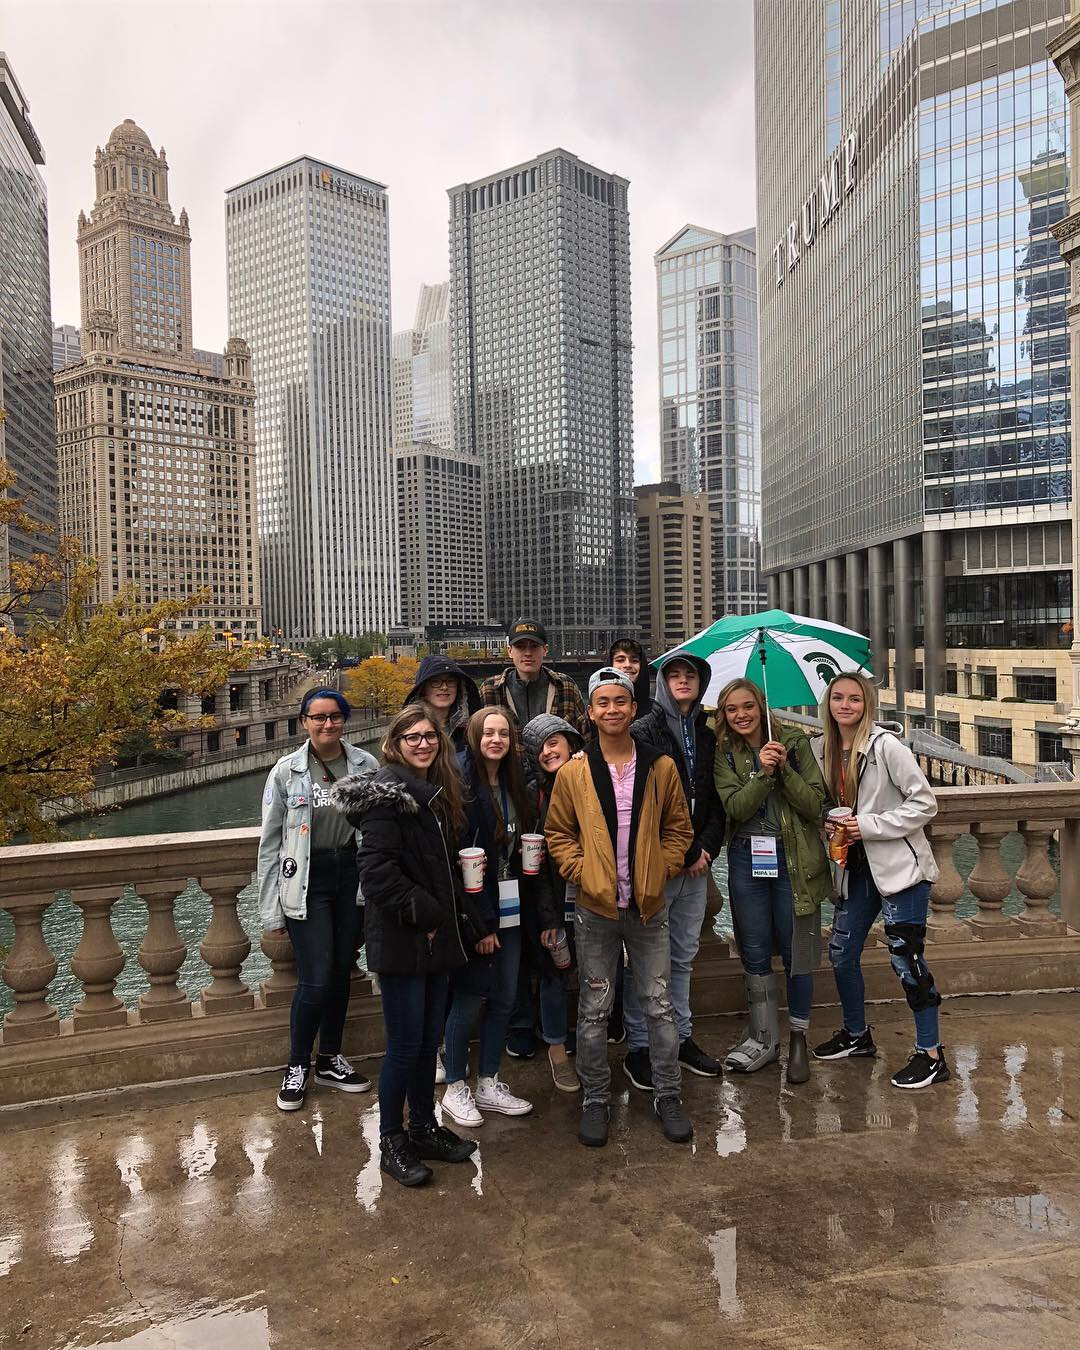 205 crew takes a picture in front of the Chicago skyline.